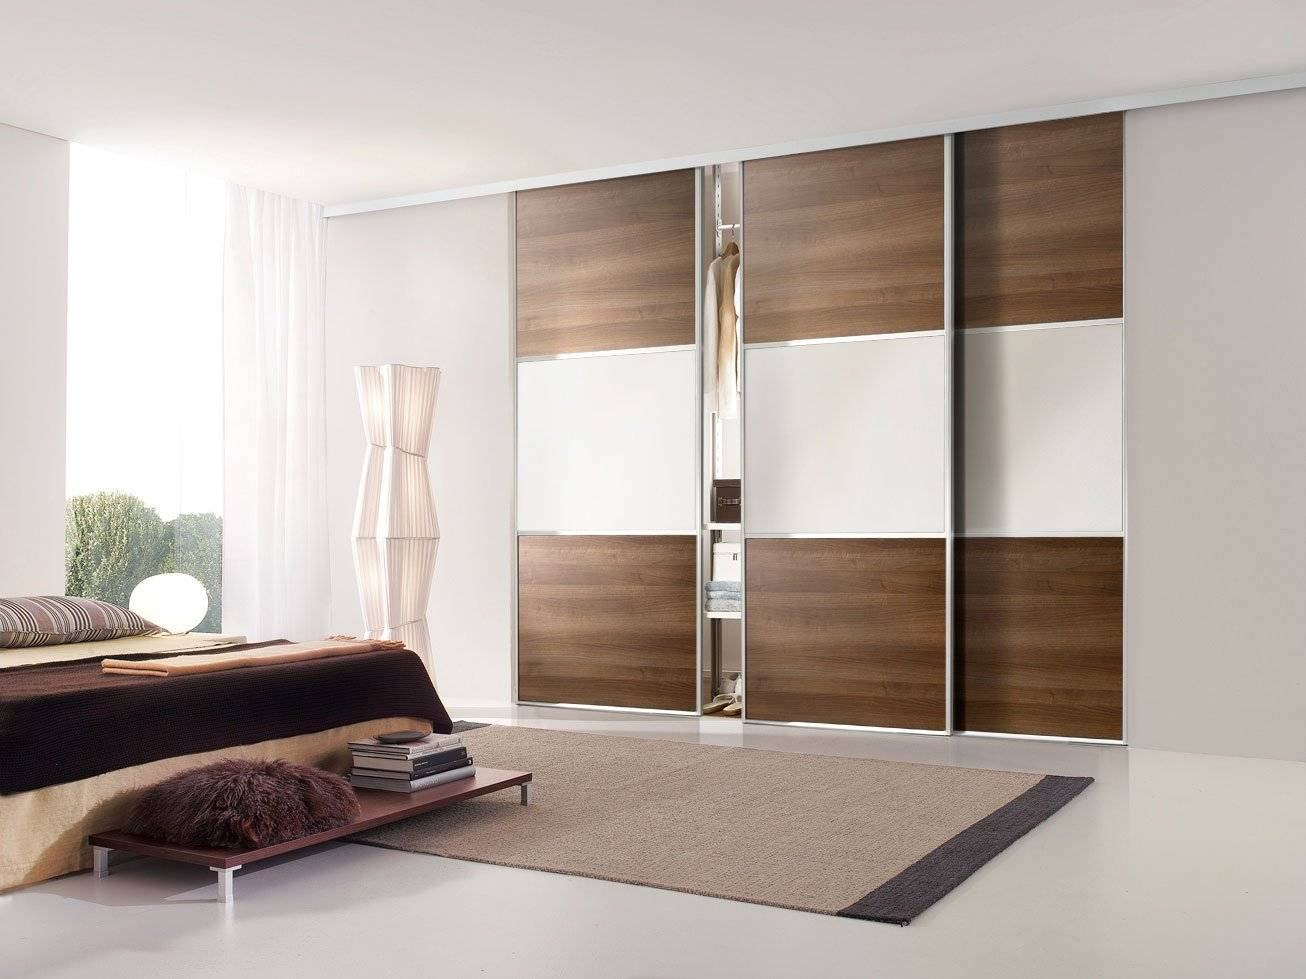 Ray dolap malat ankara raydolap modelleri s rg l dolap for Back painted glass designs for wardrobe